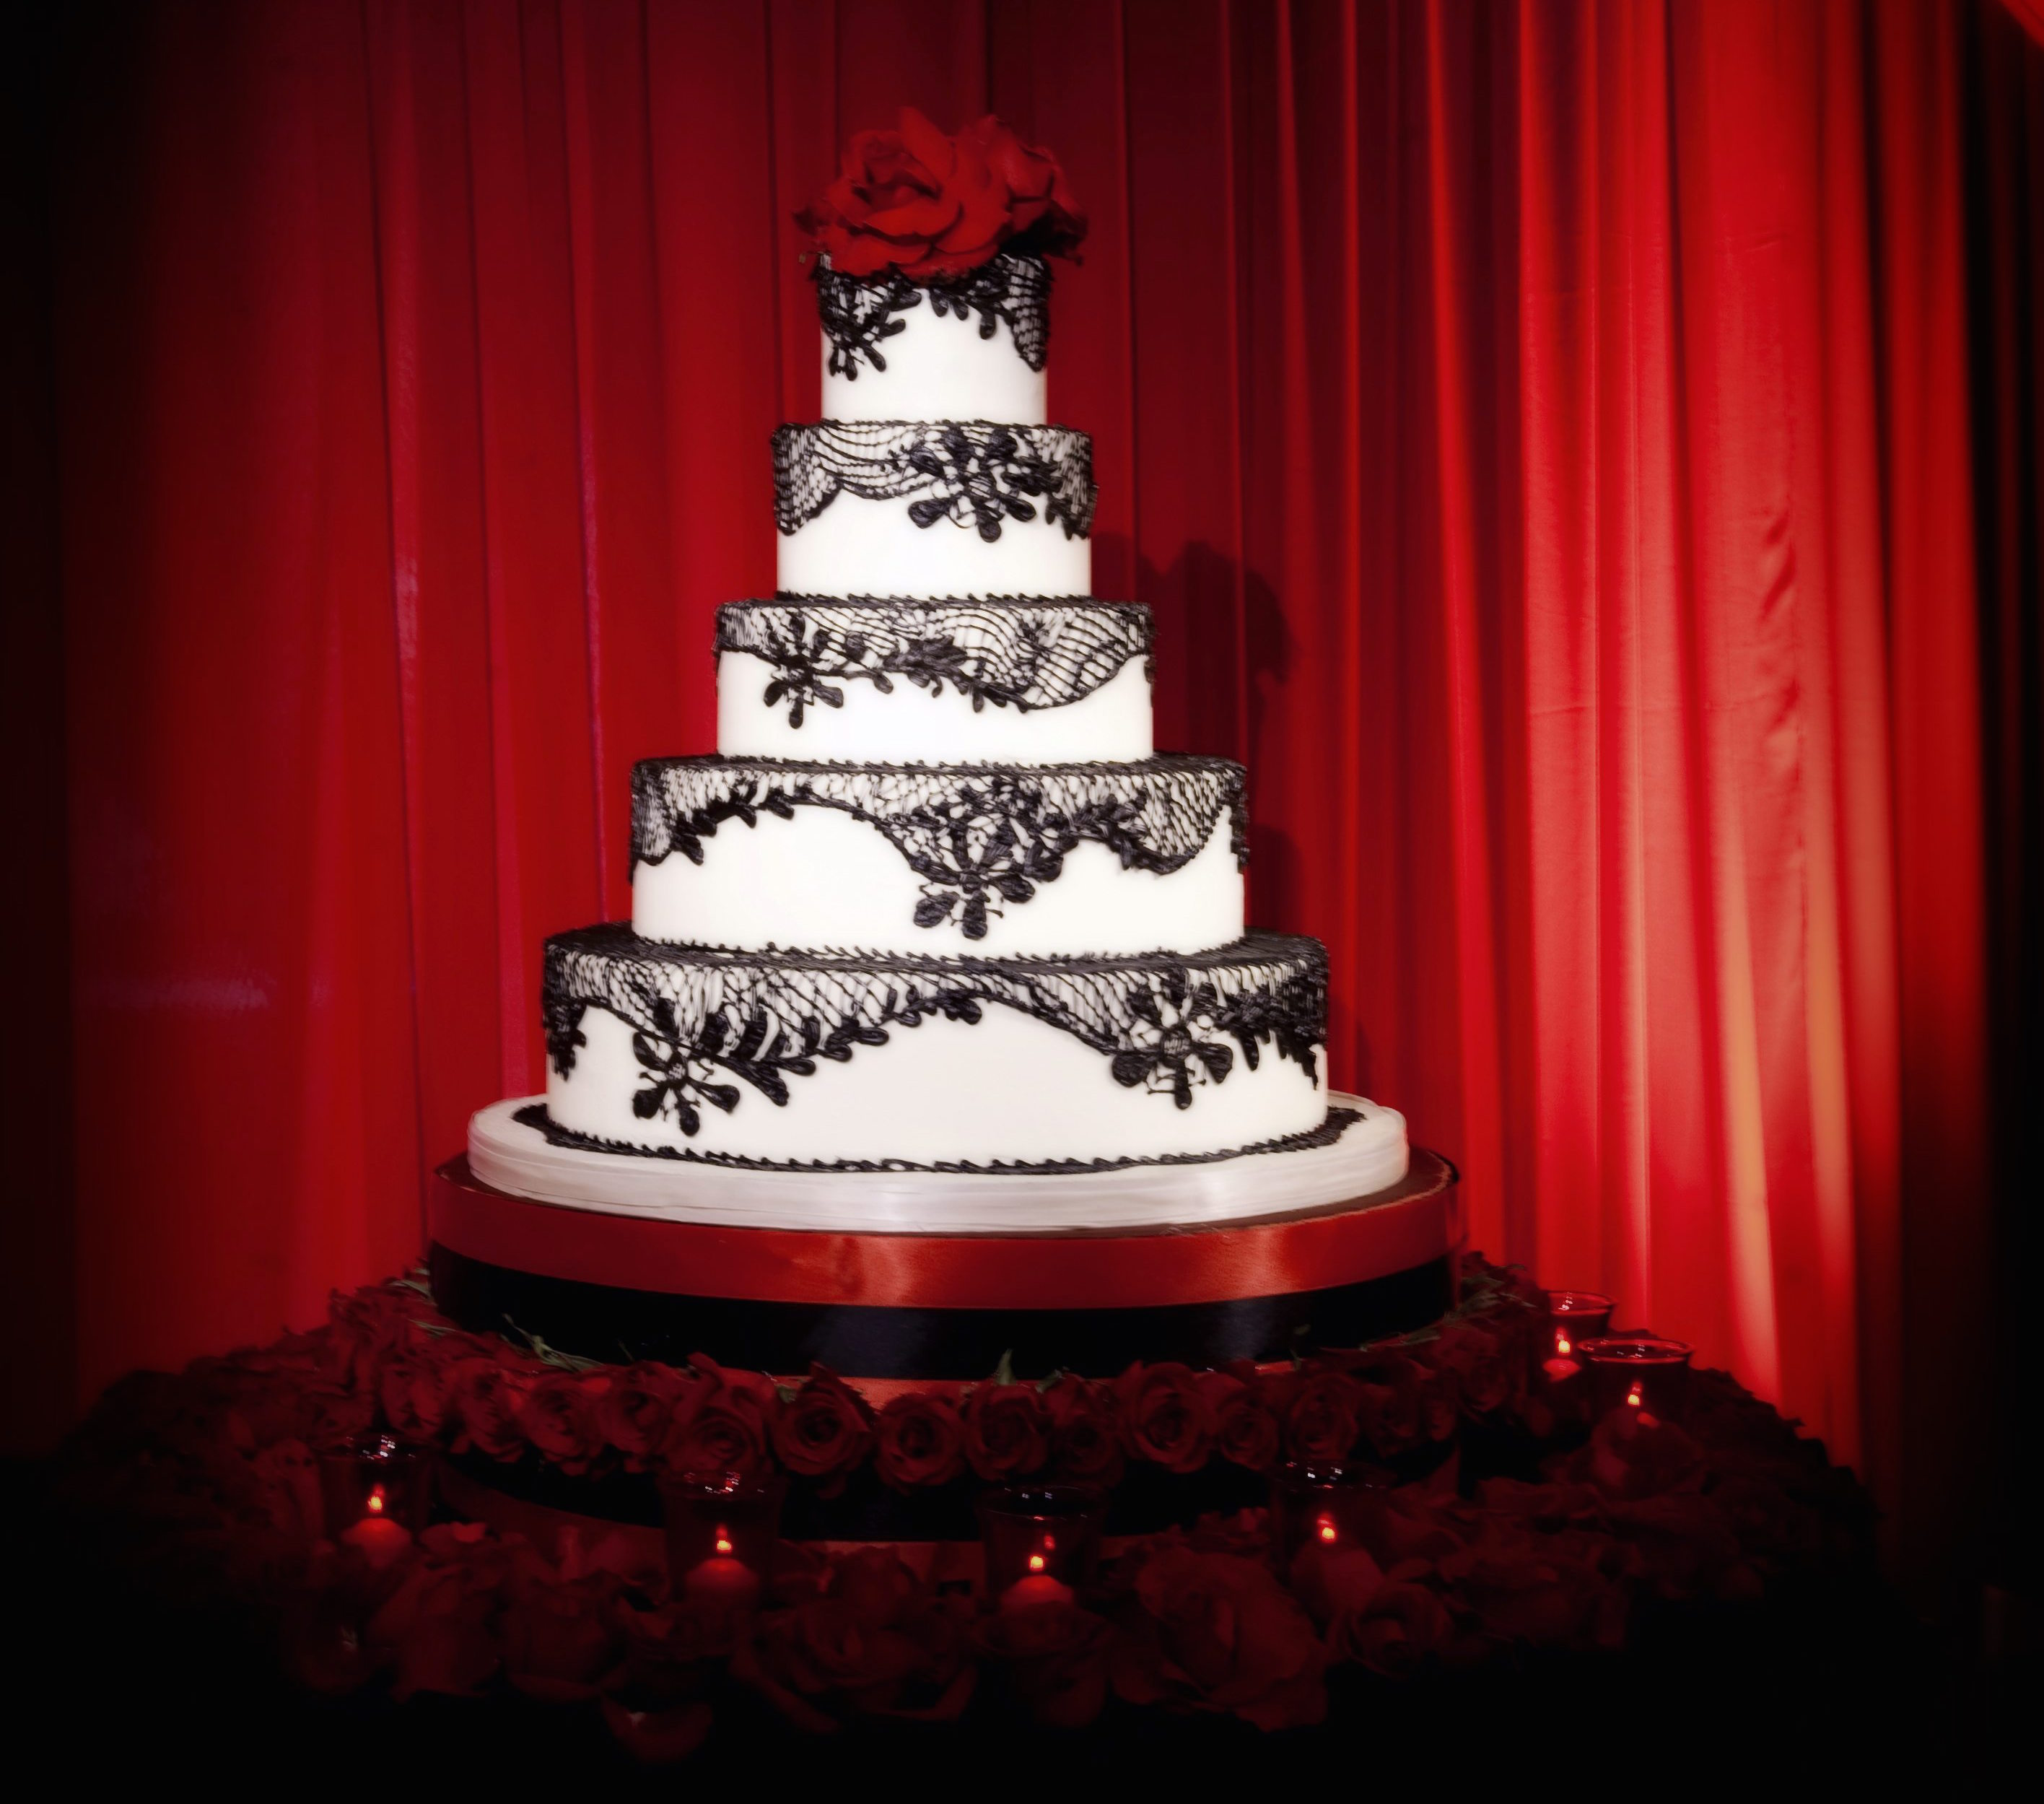 Black and white wedding cake with lace pattern